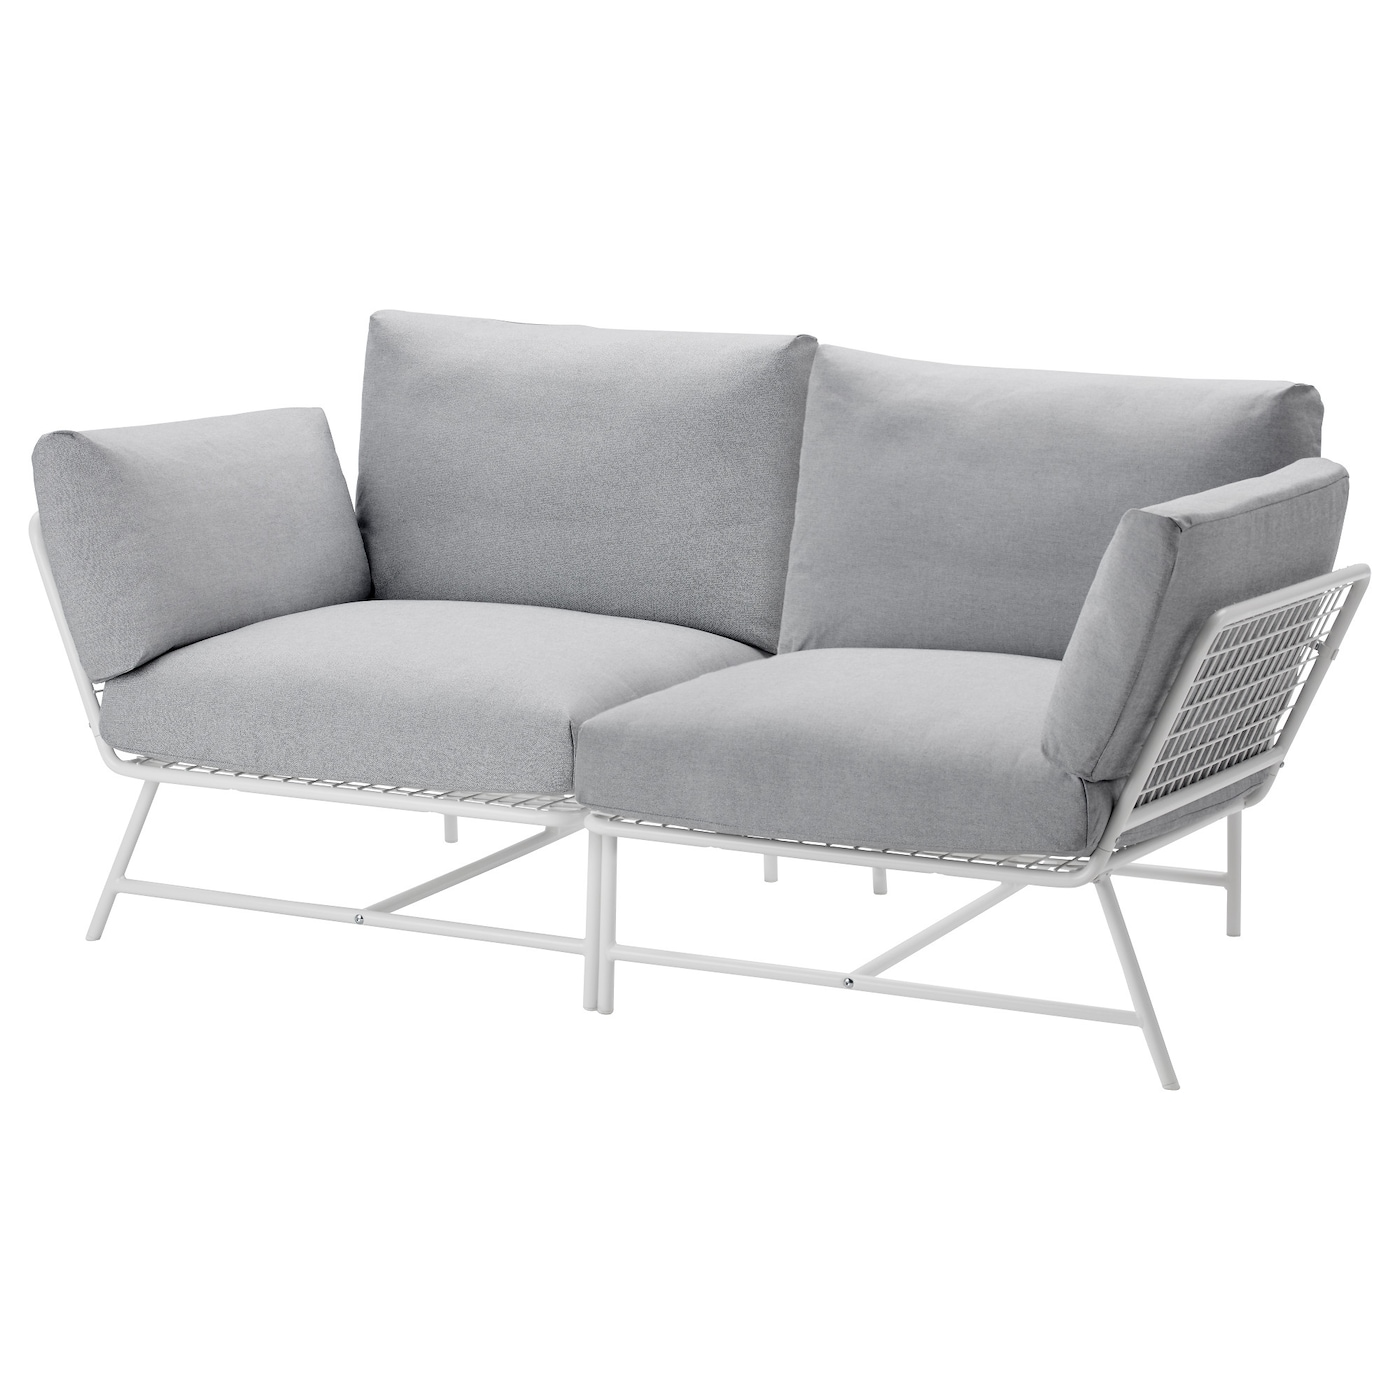 Ikea ps 2017 2 seat sofa white grey ikea for Sofa jugendzimmer ikea